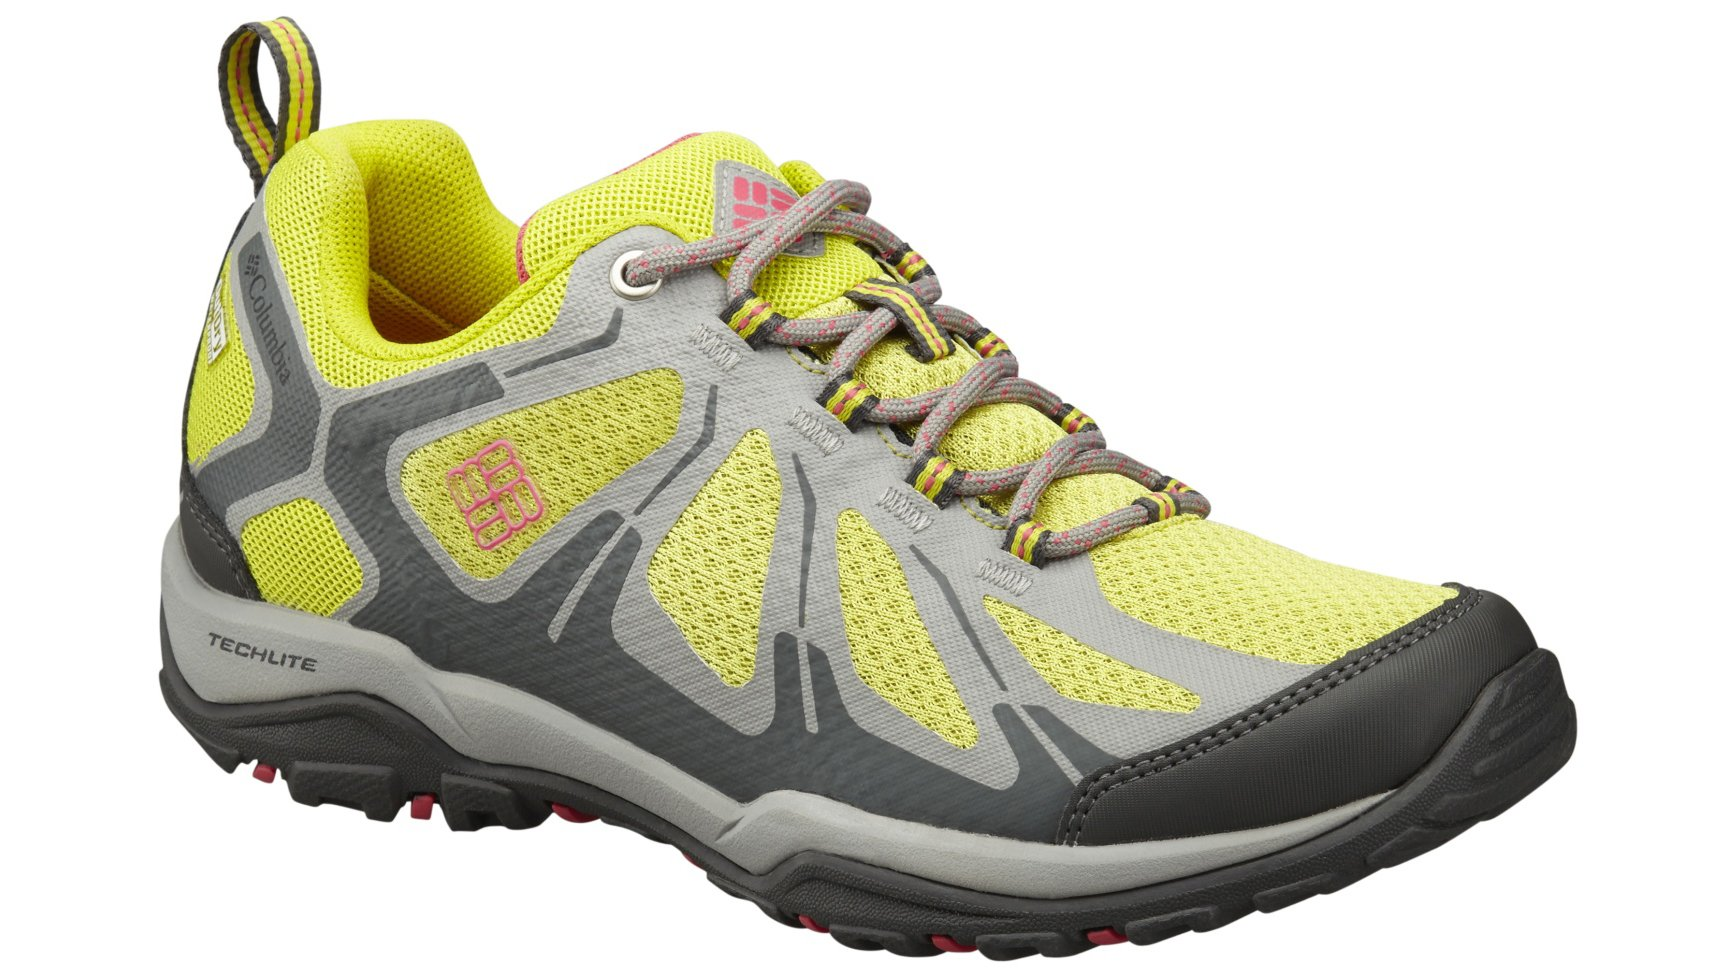 f2011b4908c The Peakfreak is the perfect waterproof trainer for summer walking – sturdy  enough for trekking but ...